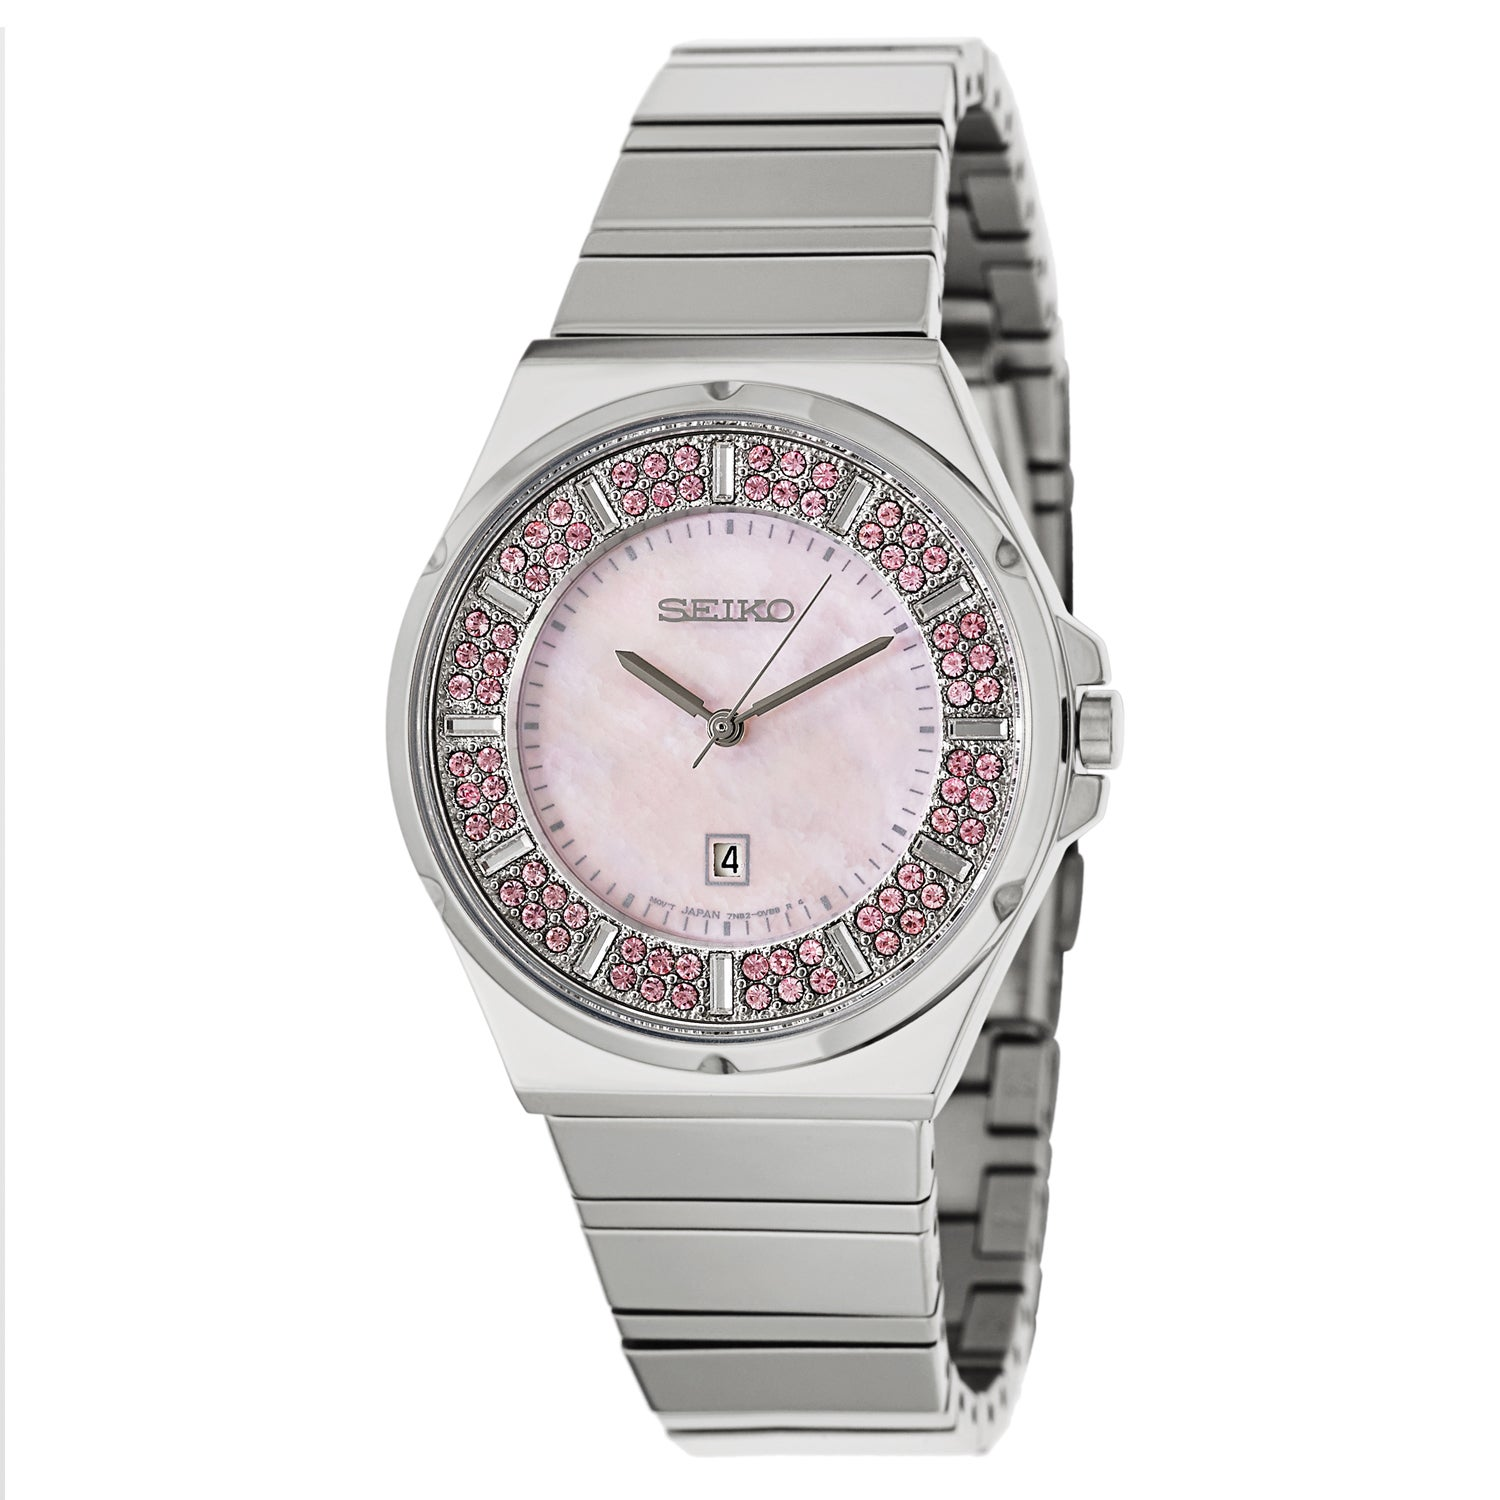 Seiko Women's SXDG13 Stainless Steel and Pink Crystal Wat...